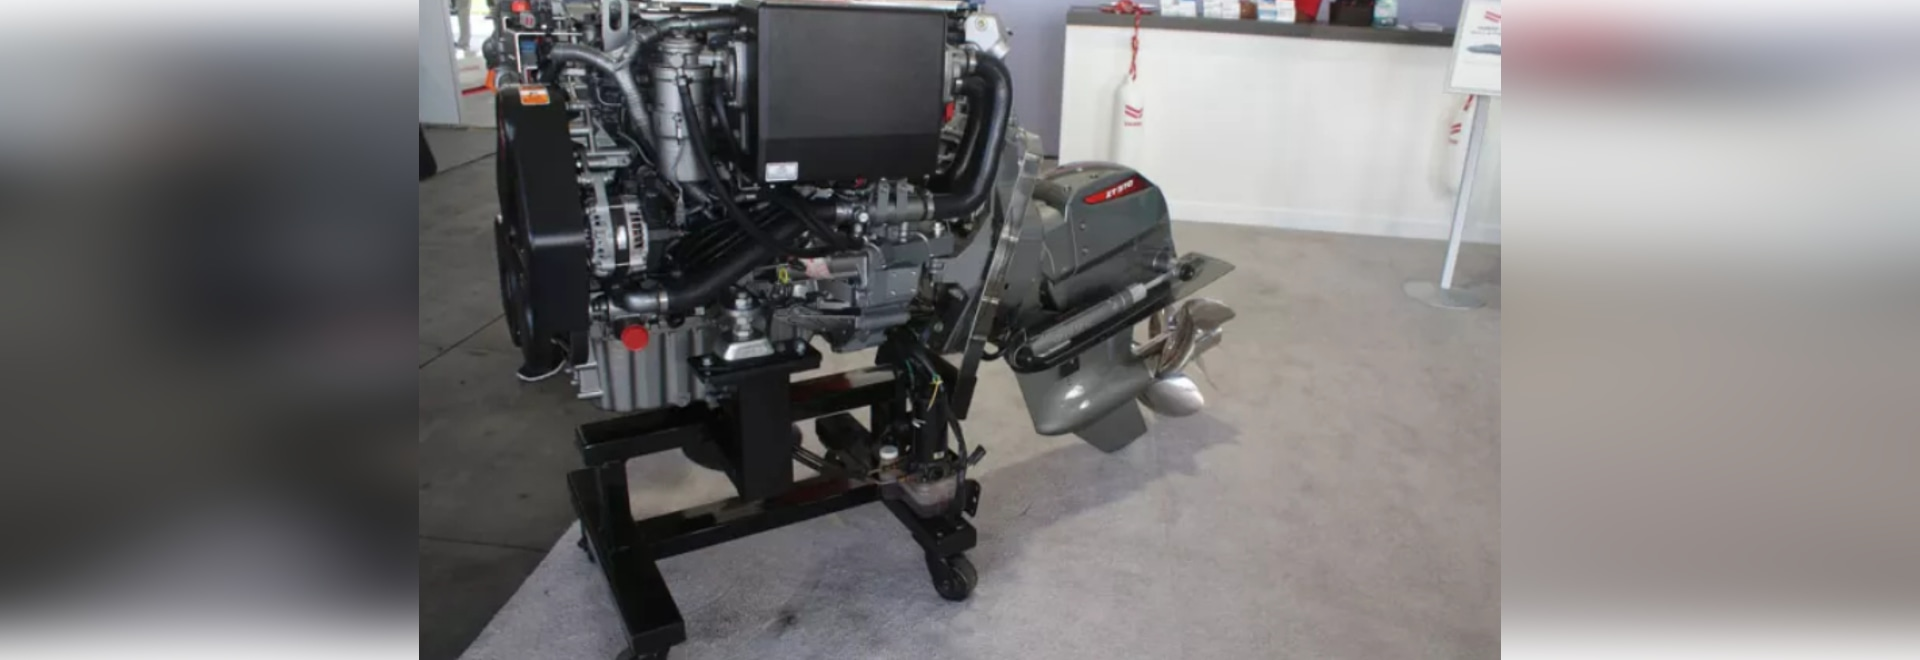 Built on a 4-cylinder block, the diesel is offered in 150-, 170- and 195-hp versions.